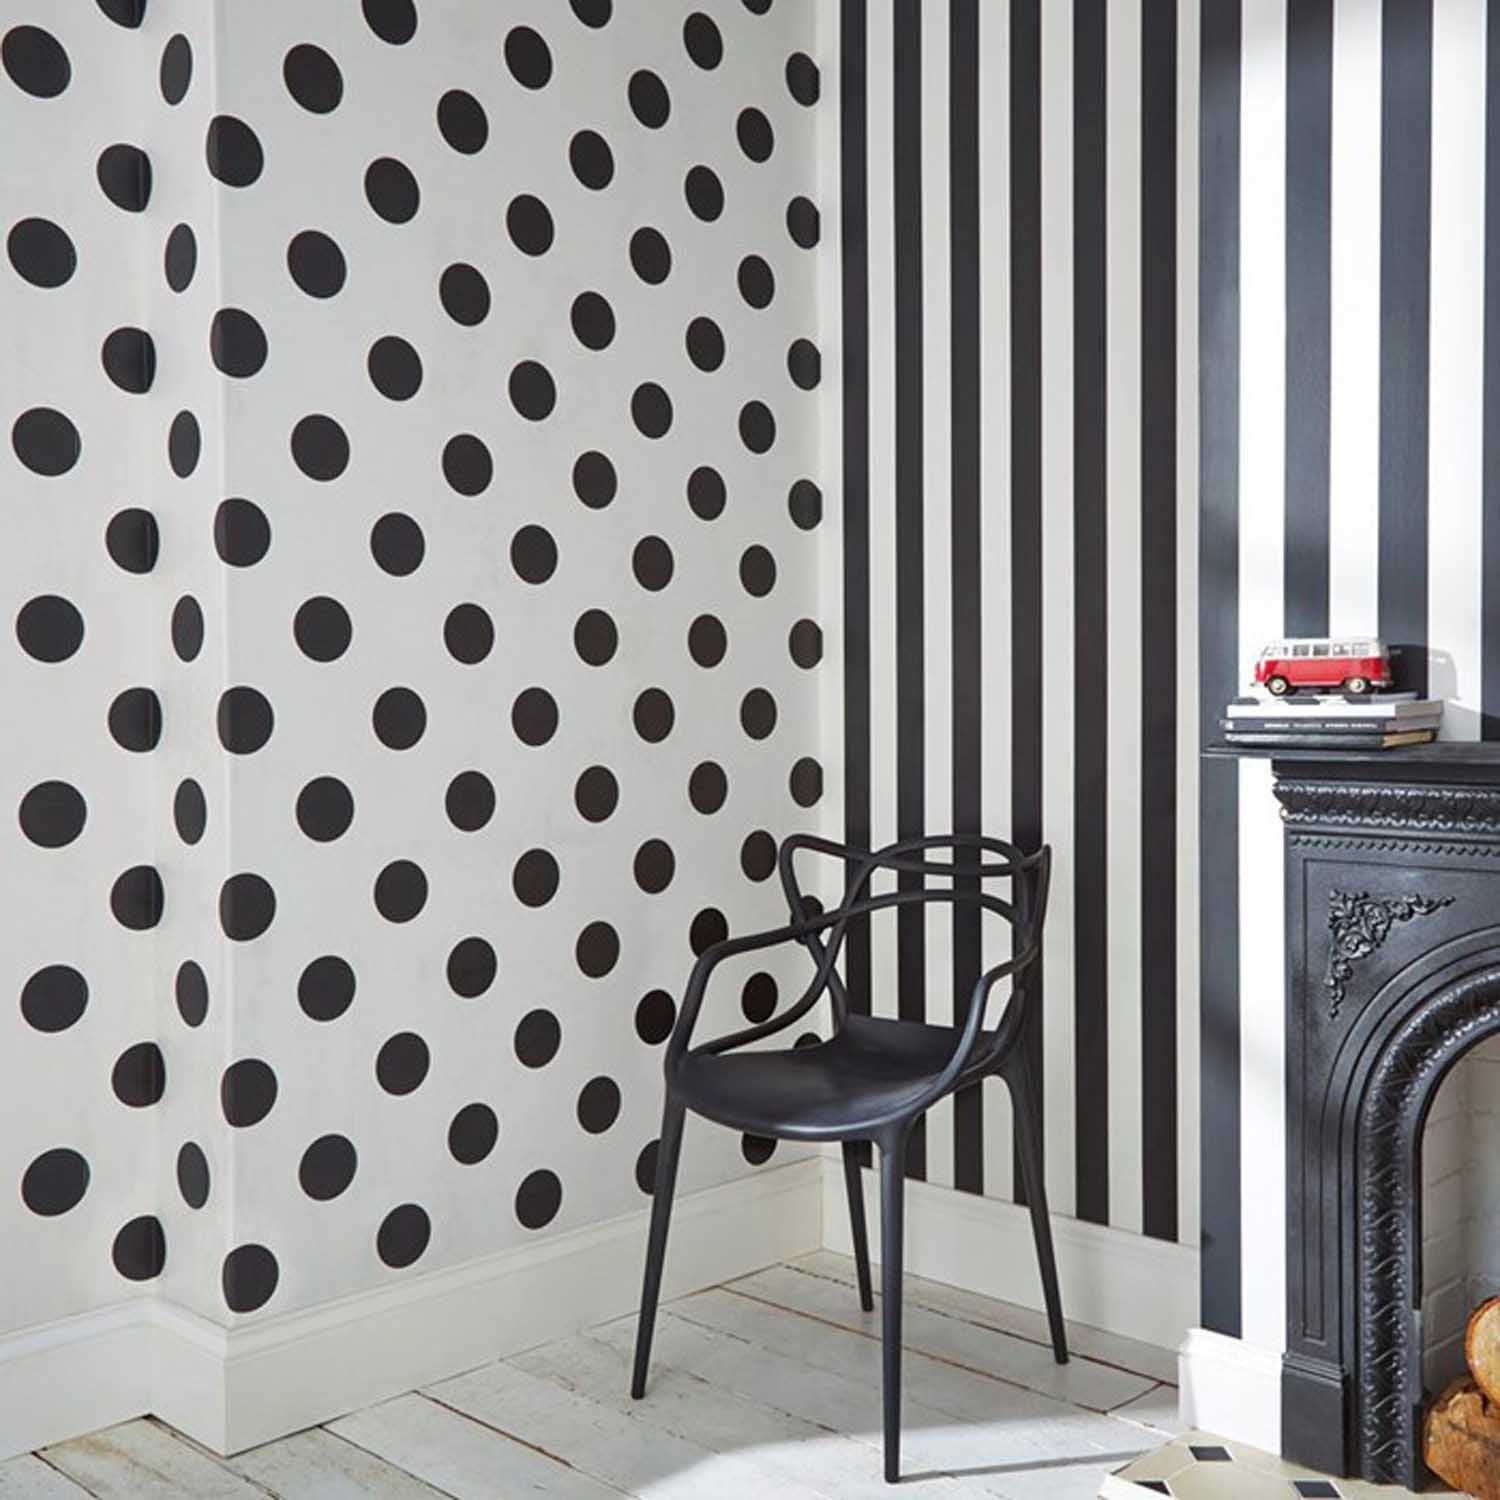 Polka Dots/Spots Wallpaper | Black & White